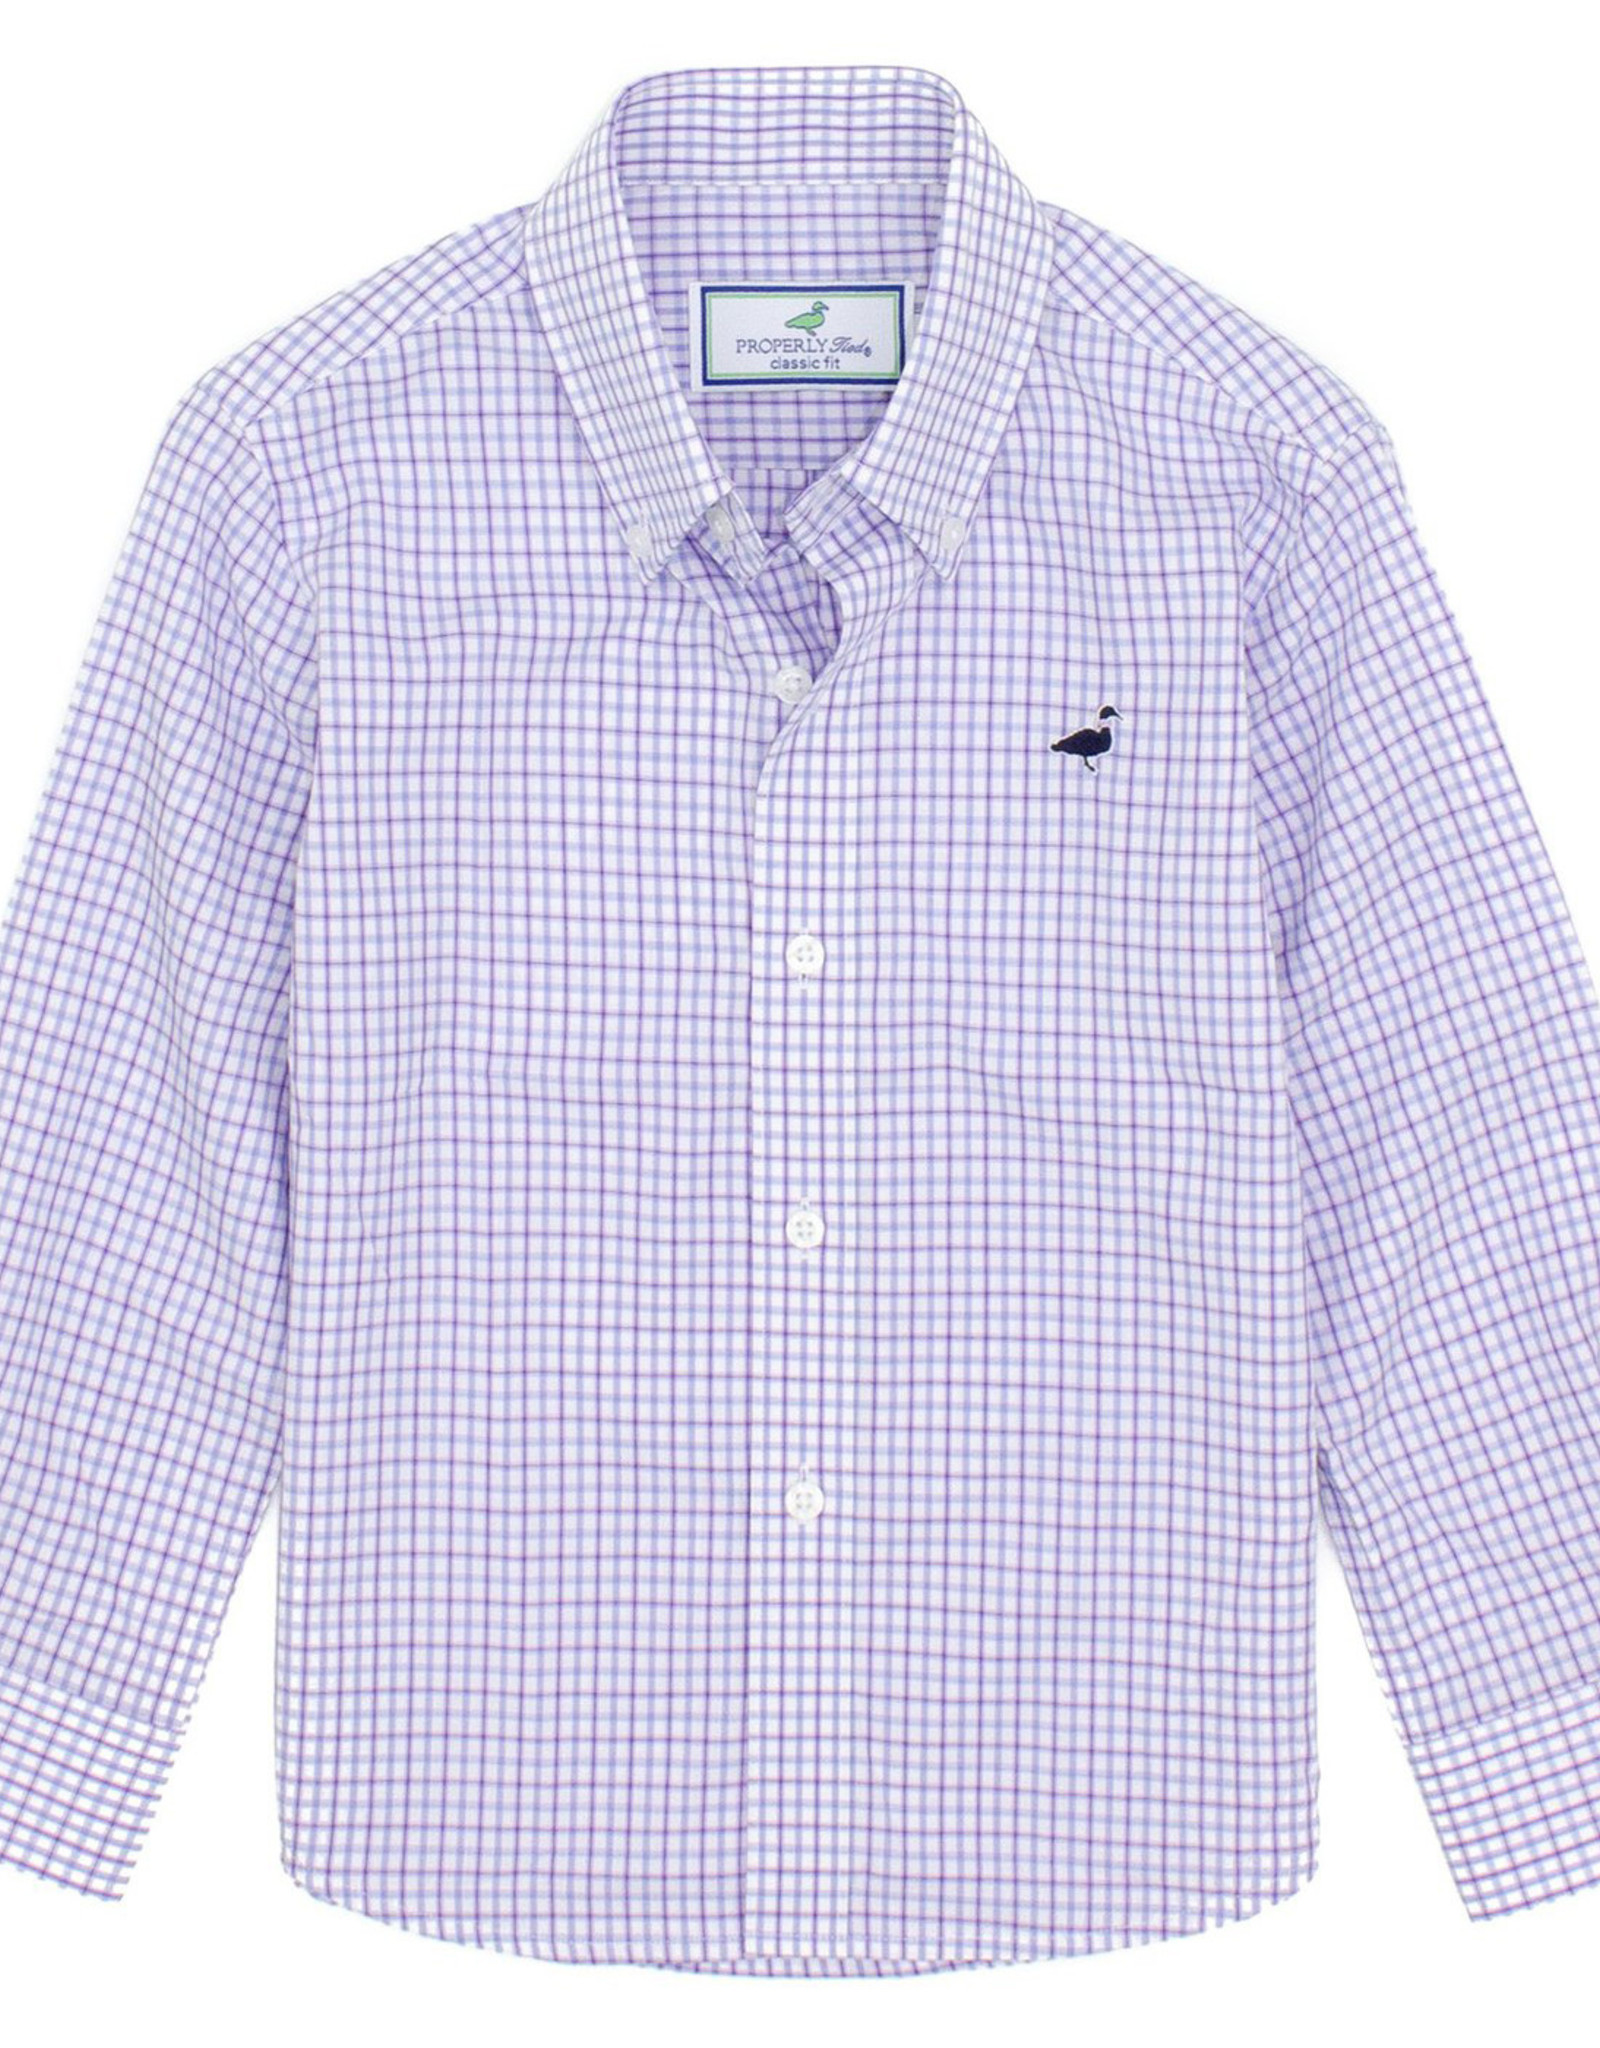 Properly Tied Seasonal Sportshirt